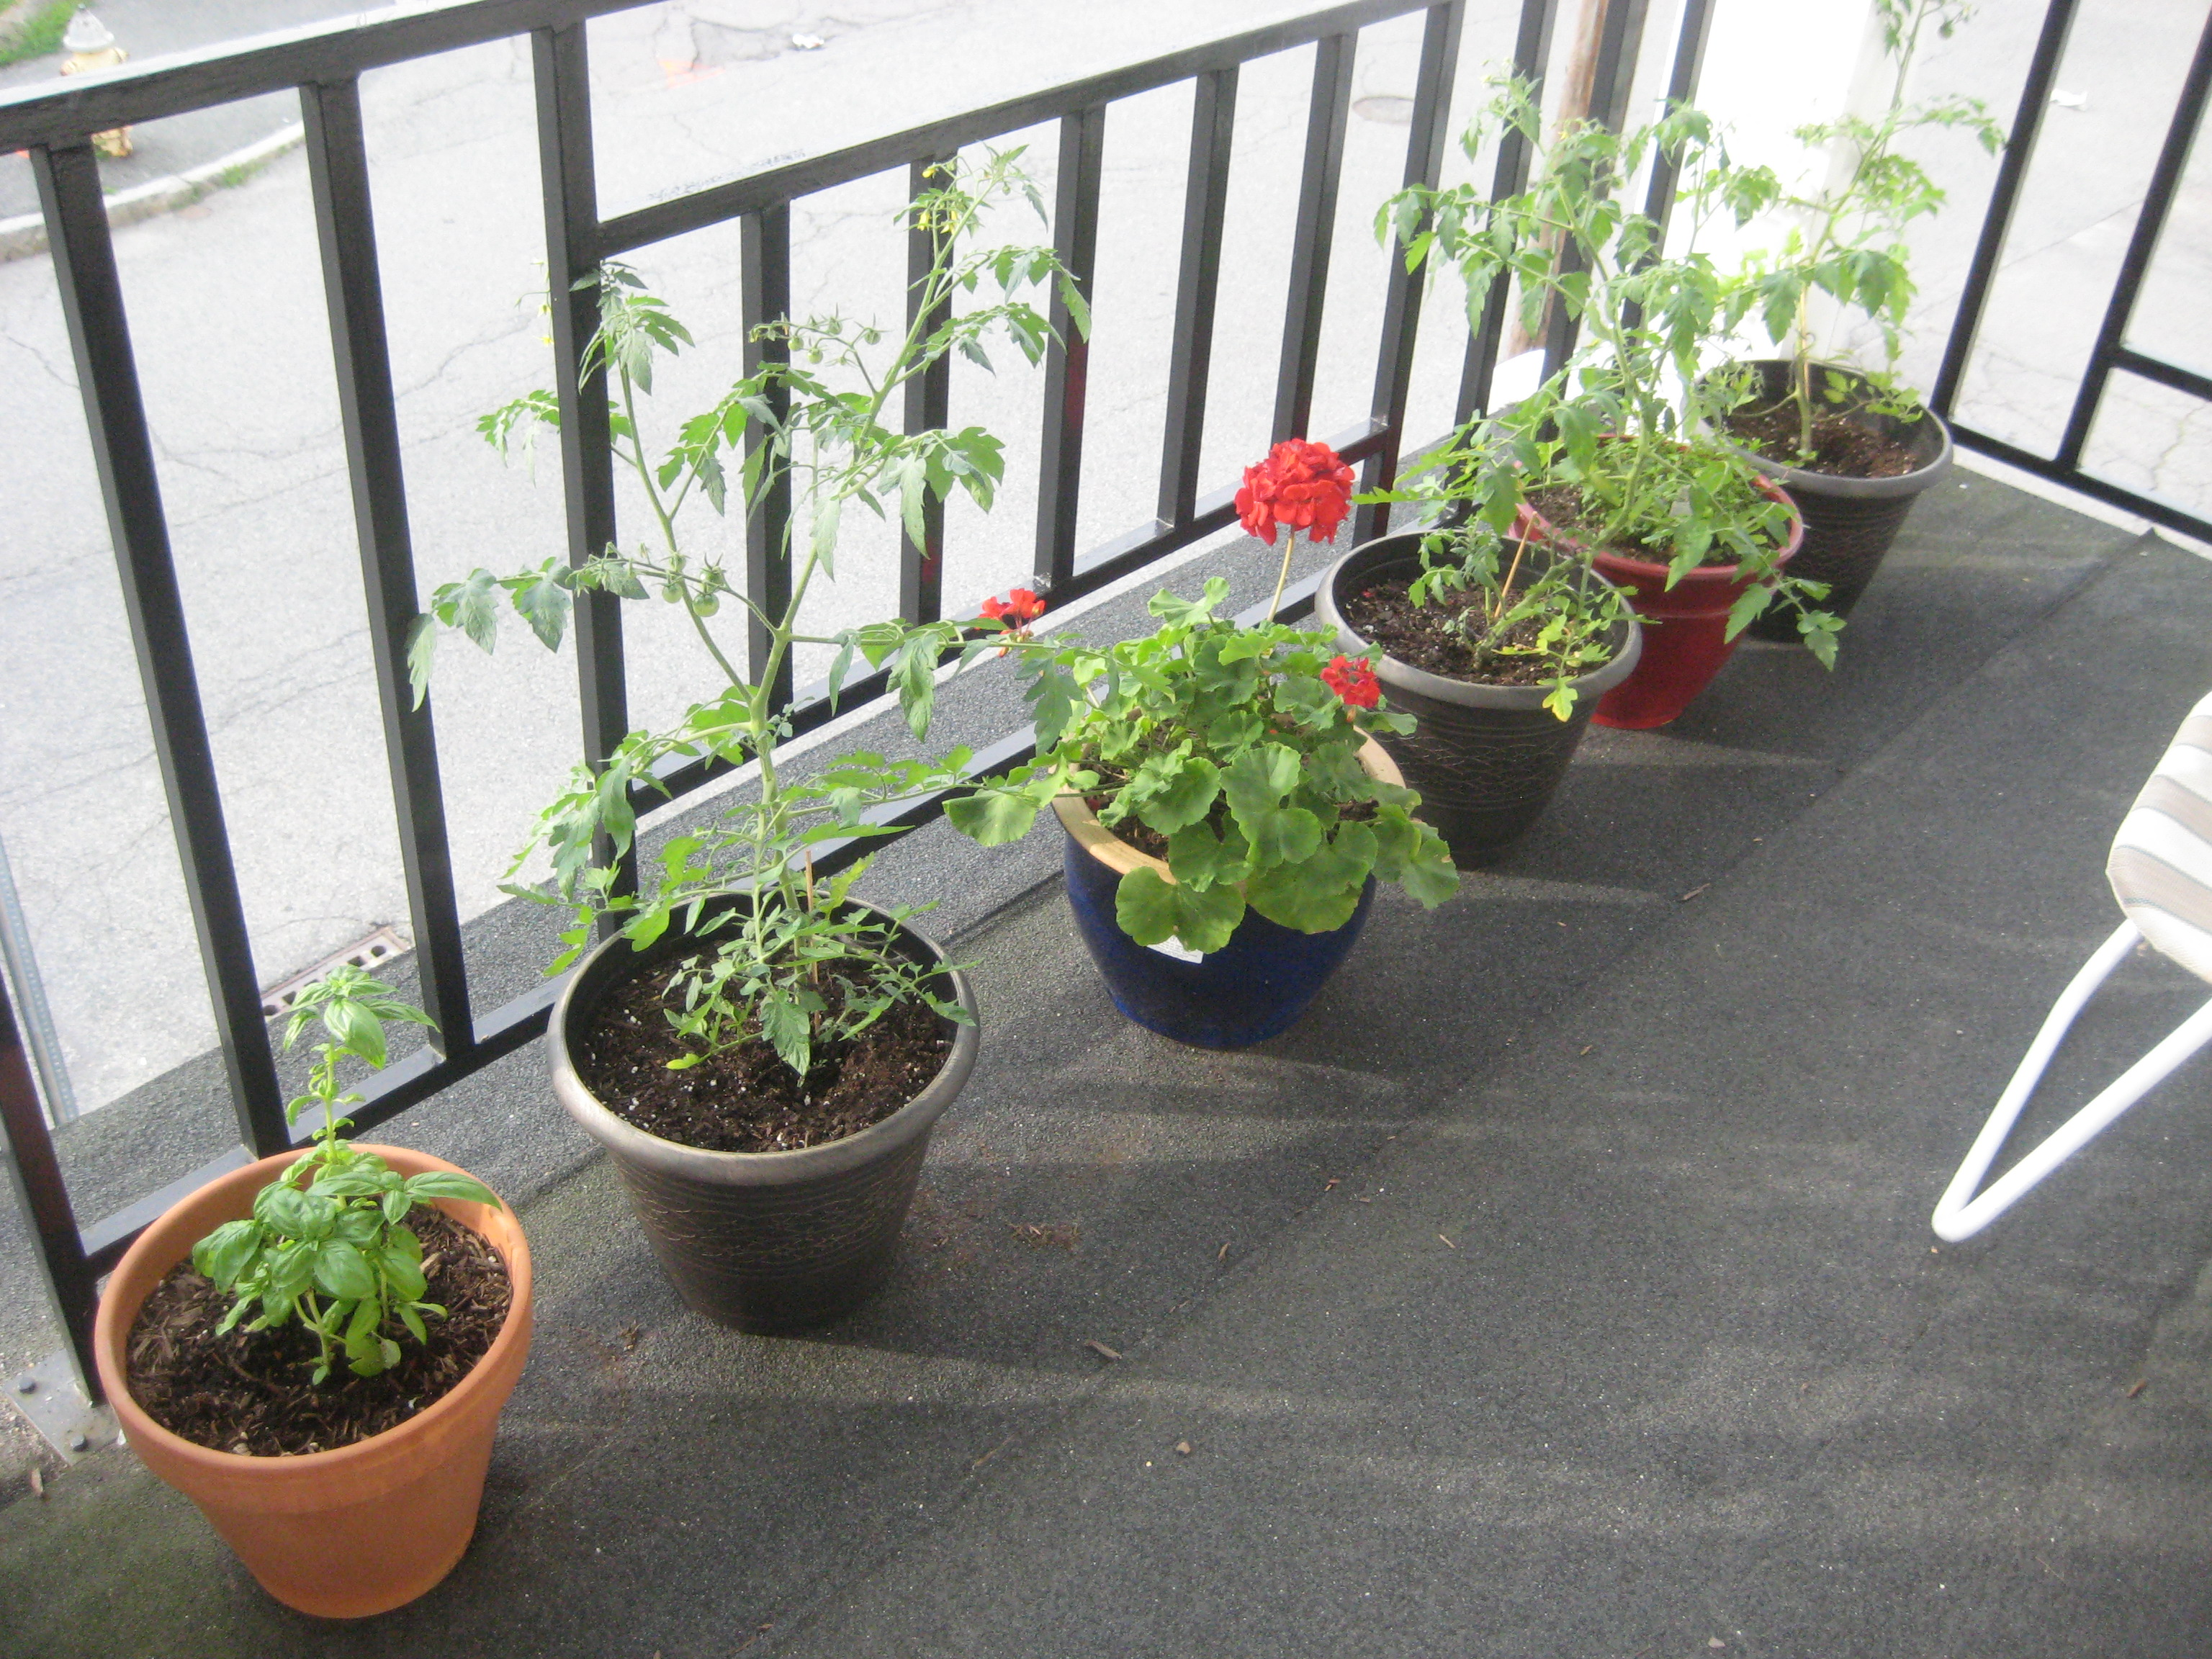 Balcony garden update cakes tea and dreams for Balcony vegetable garden